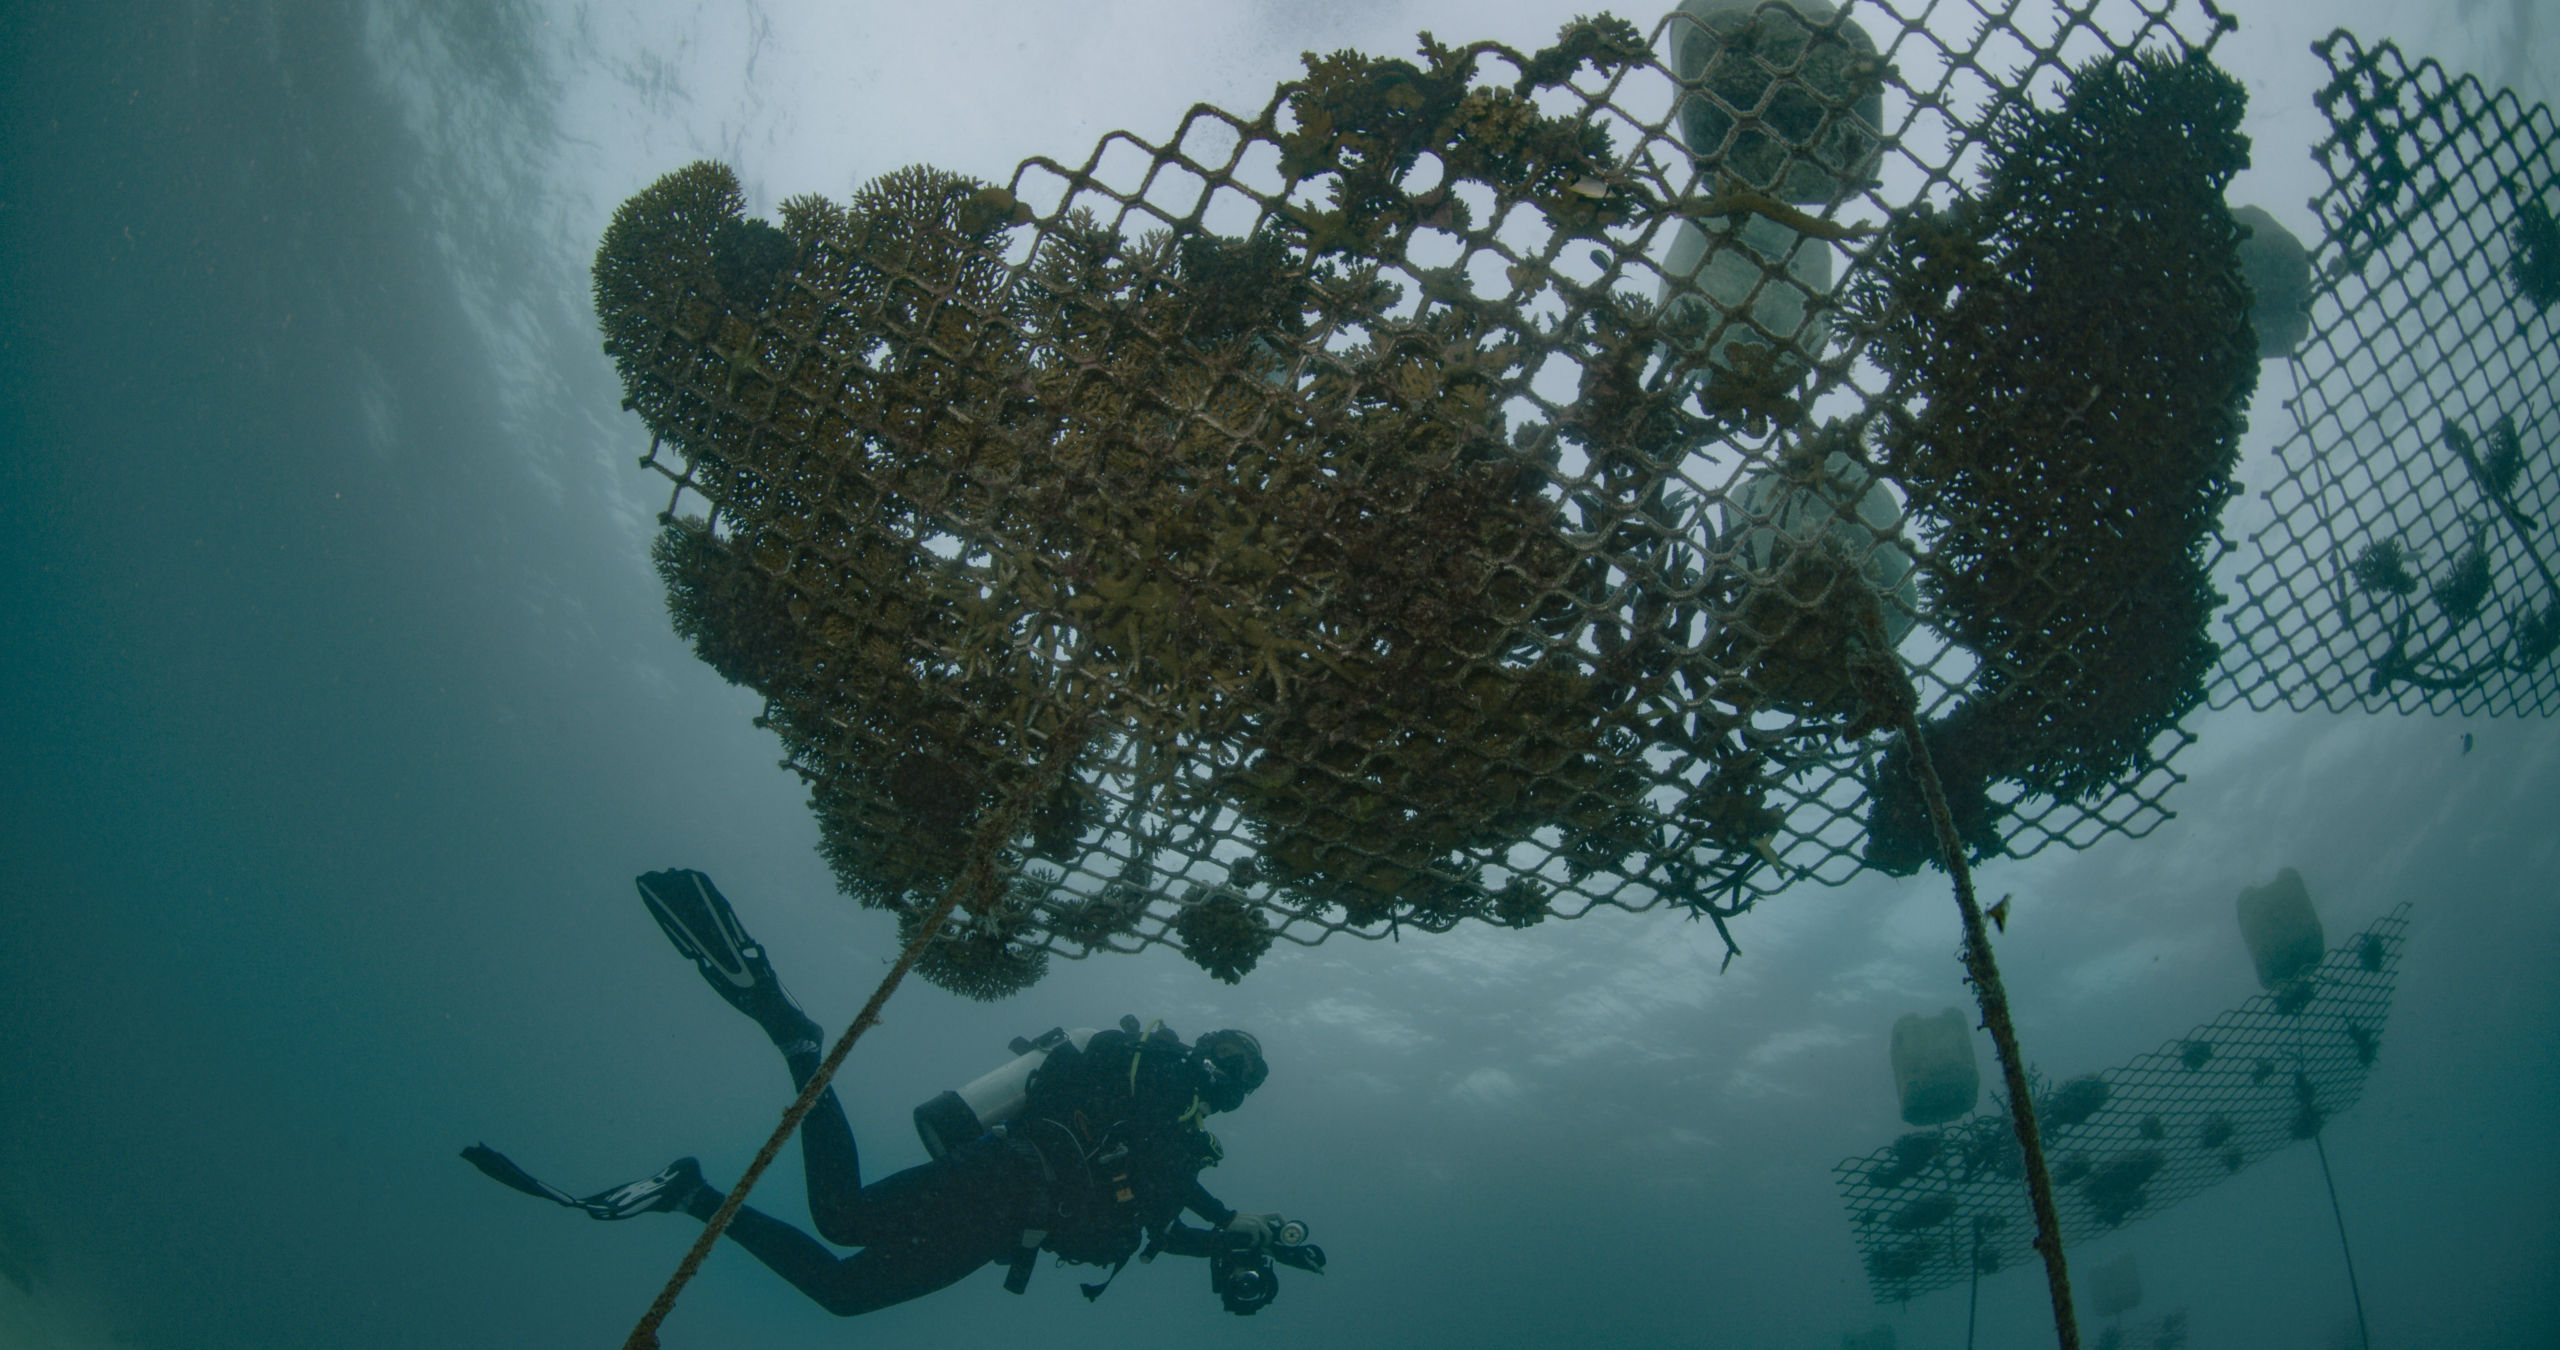 Coral nursery. Credit: Great Barrier Reef Foundation